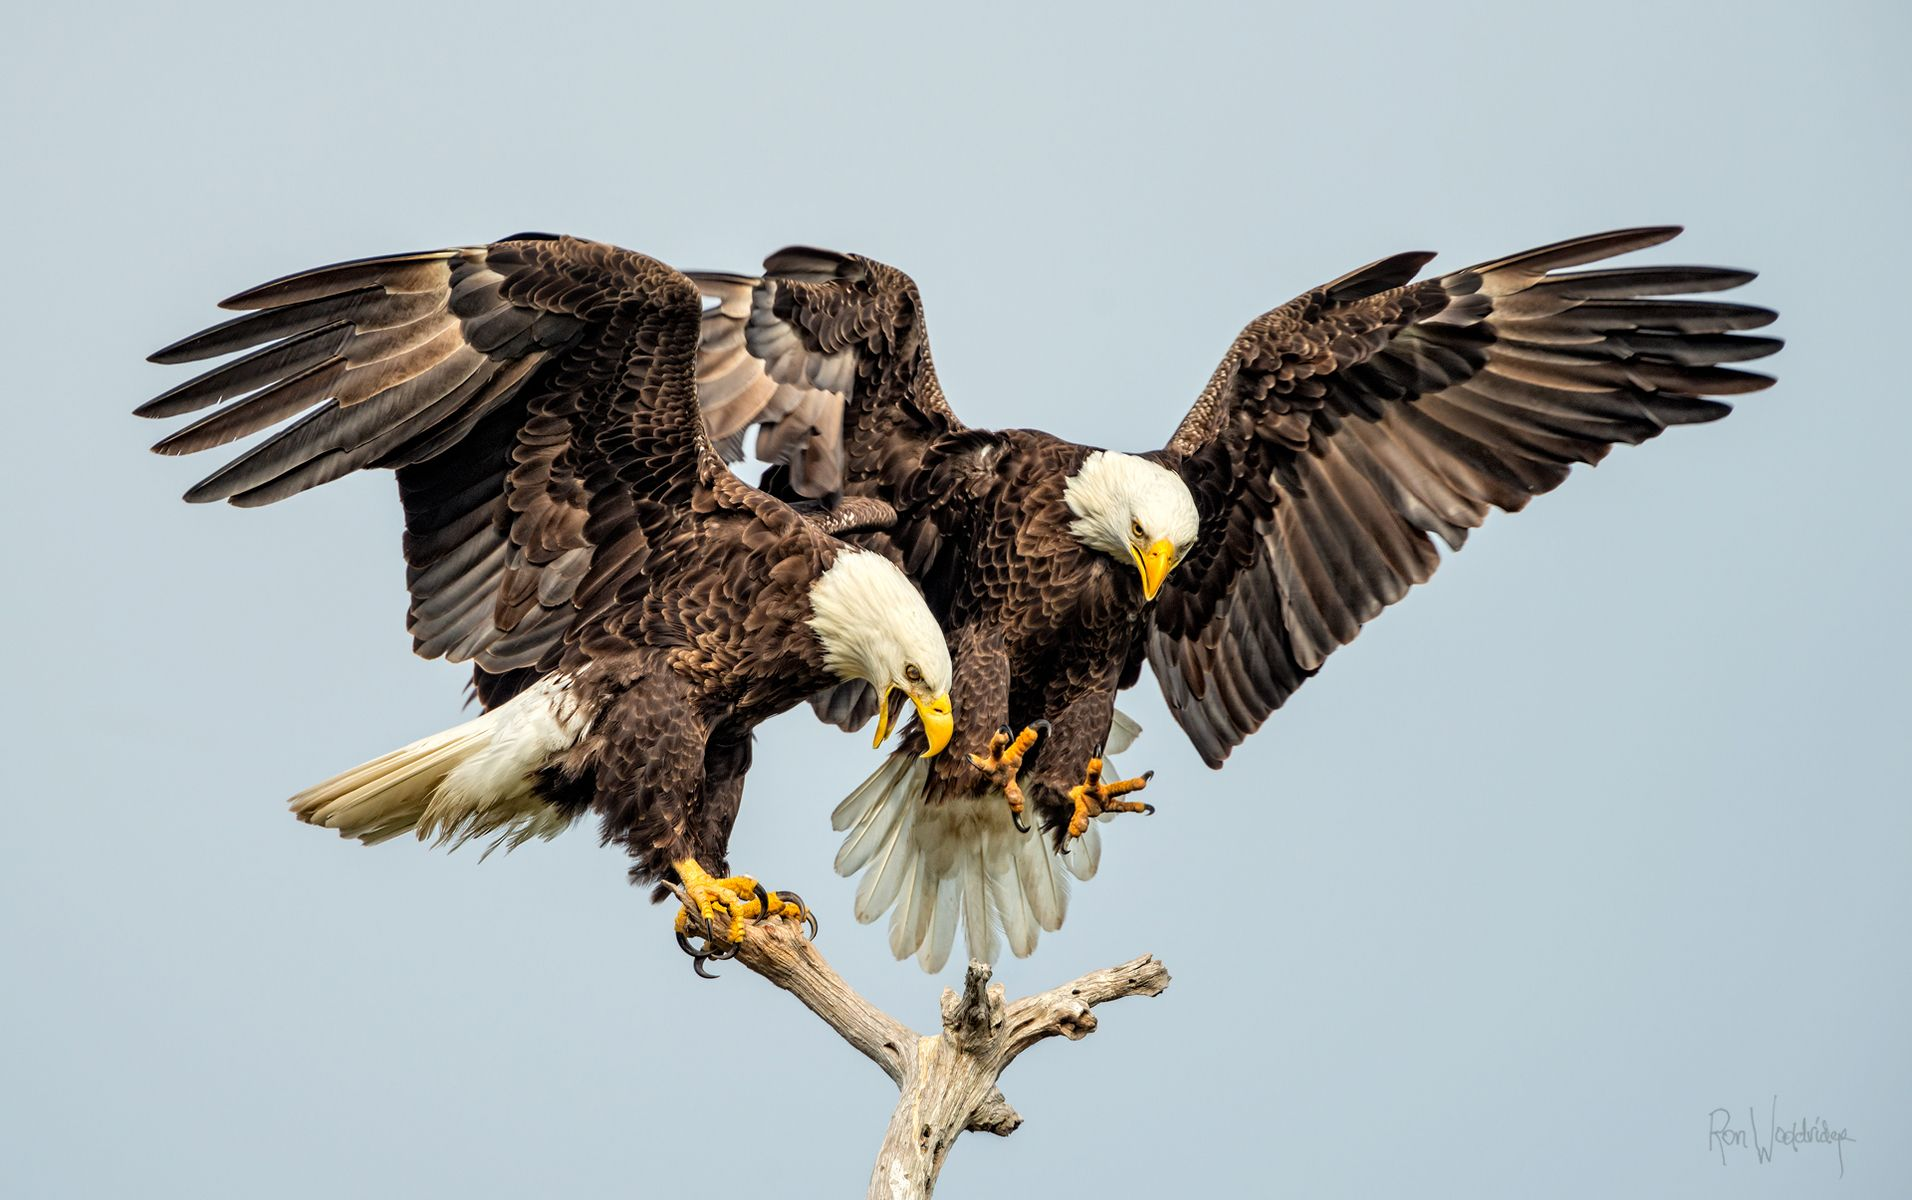 Birds Ron Wooldridge Photography Florida Back Country Nature Wildlife Water Photographer Wildlife Birds Bald Eagle